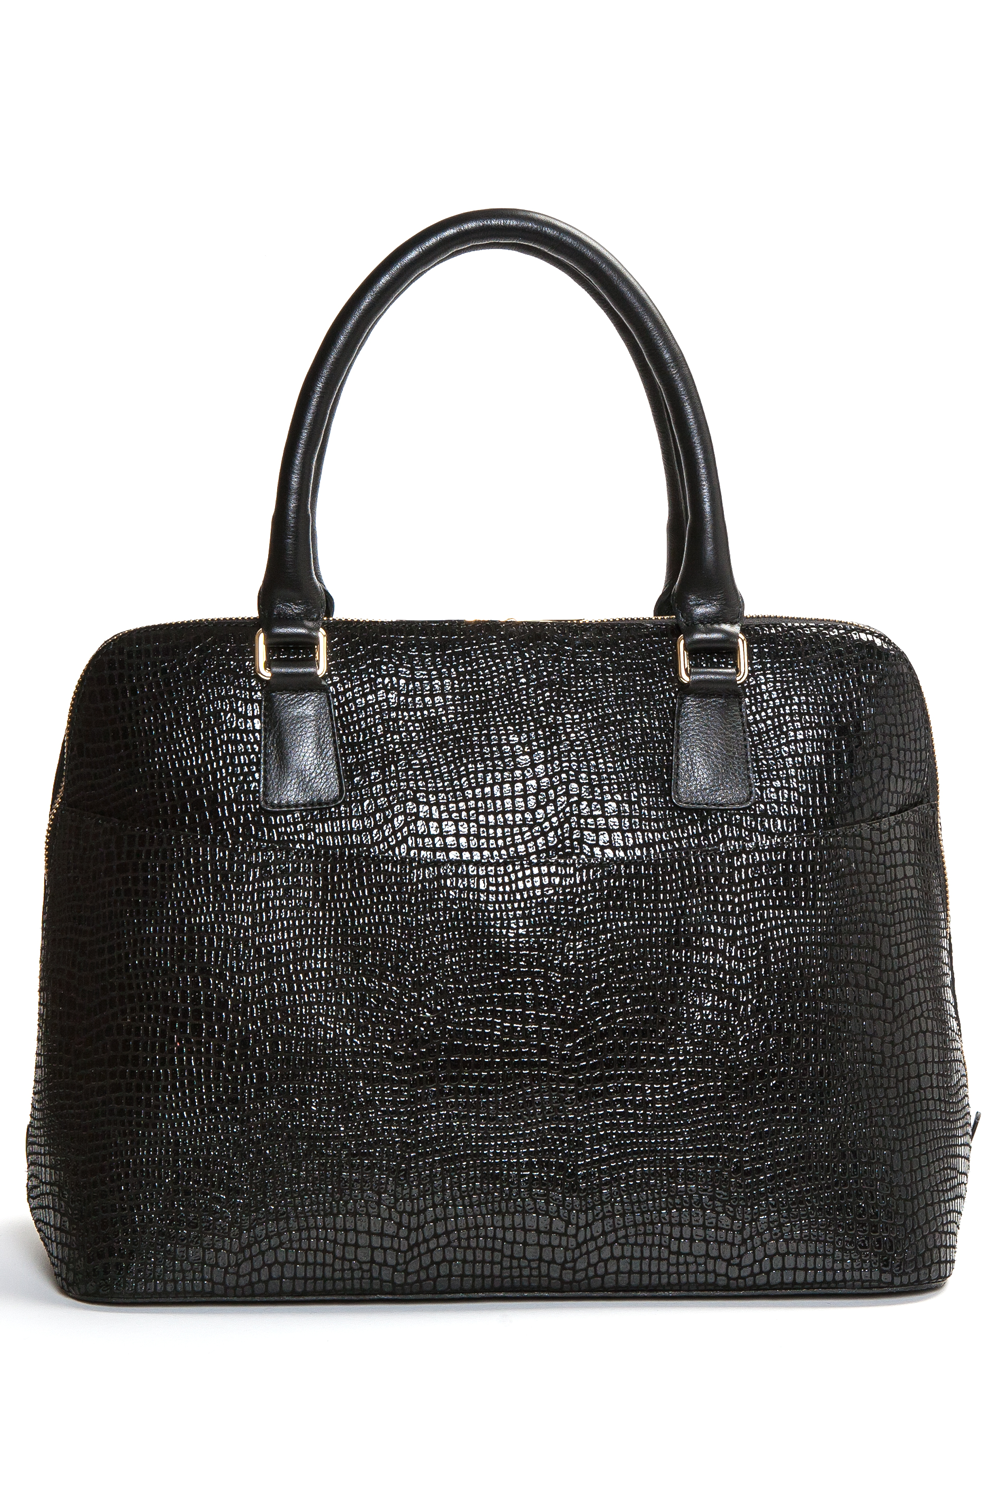 Mel Boteri | High Gloss, Black Lizard-Print Leather 'Watson' Tote | Back